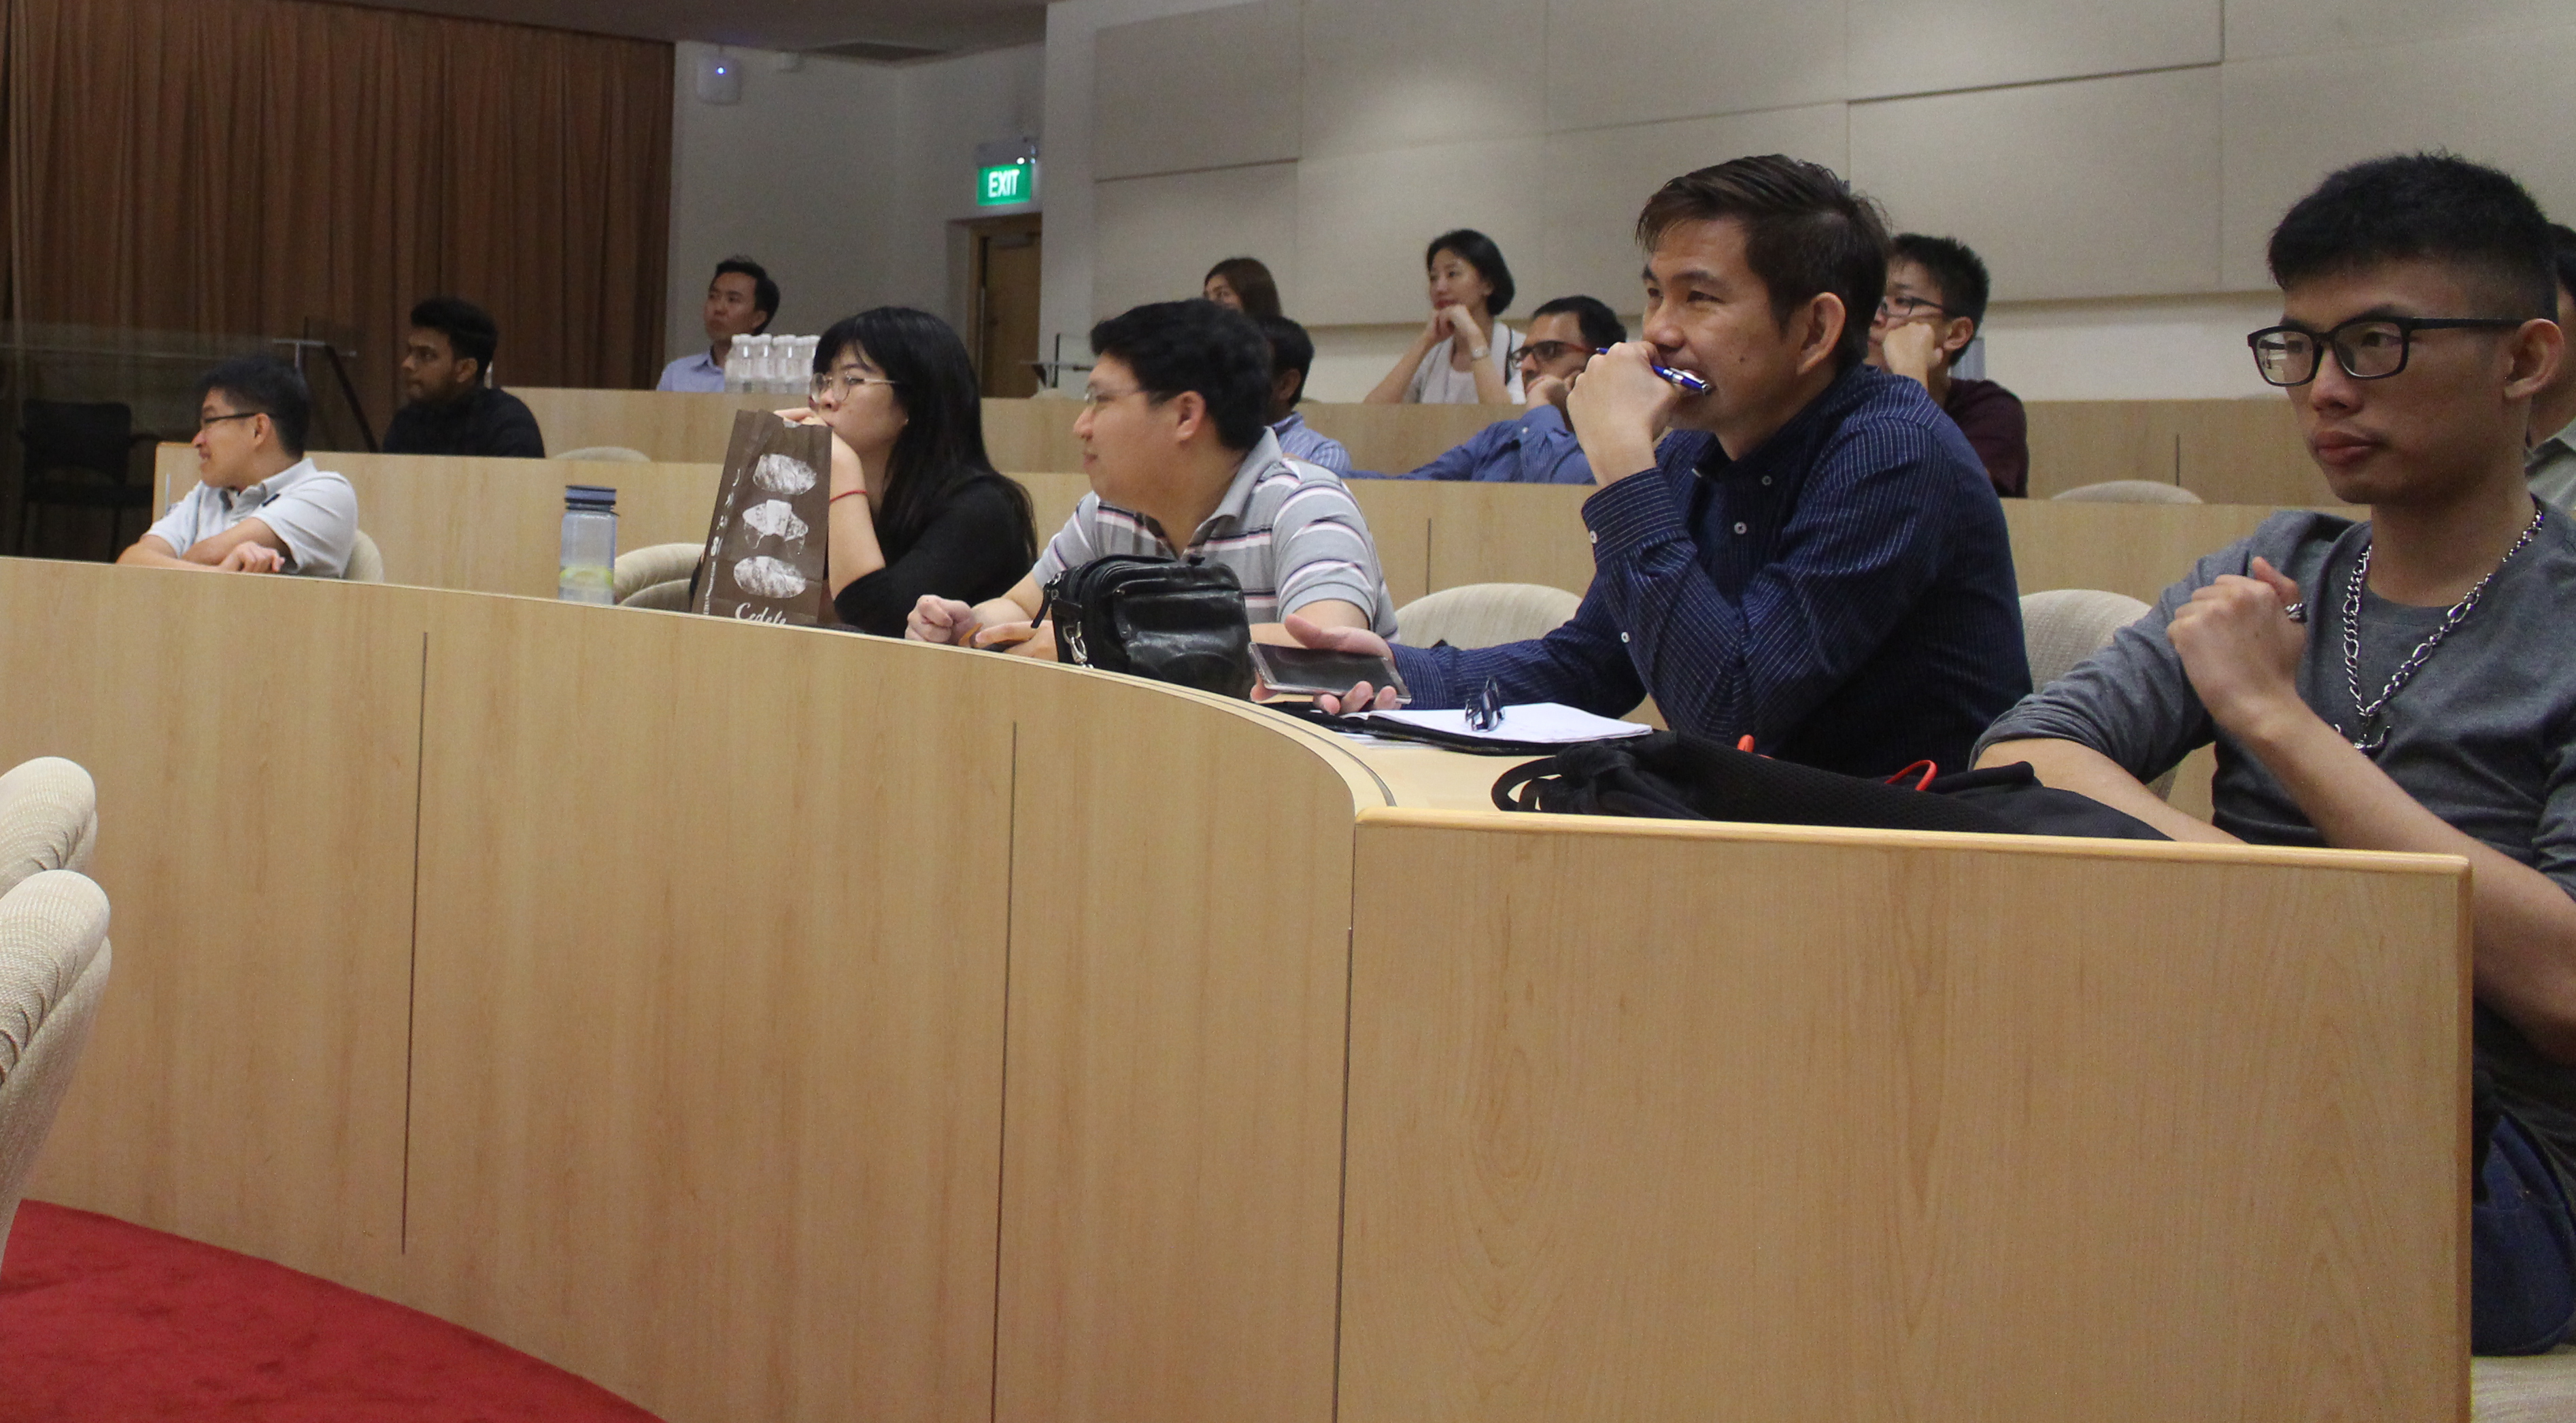 Attendees listening intently to cybersecurity expert, Loi Liang Yang's presentation.